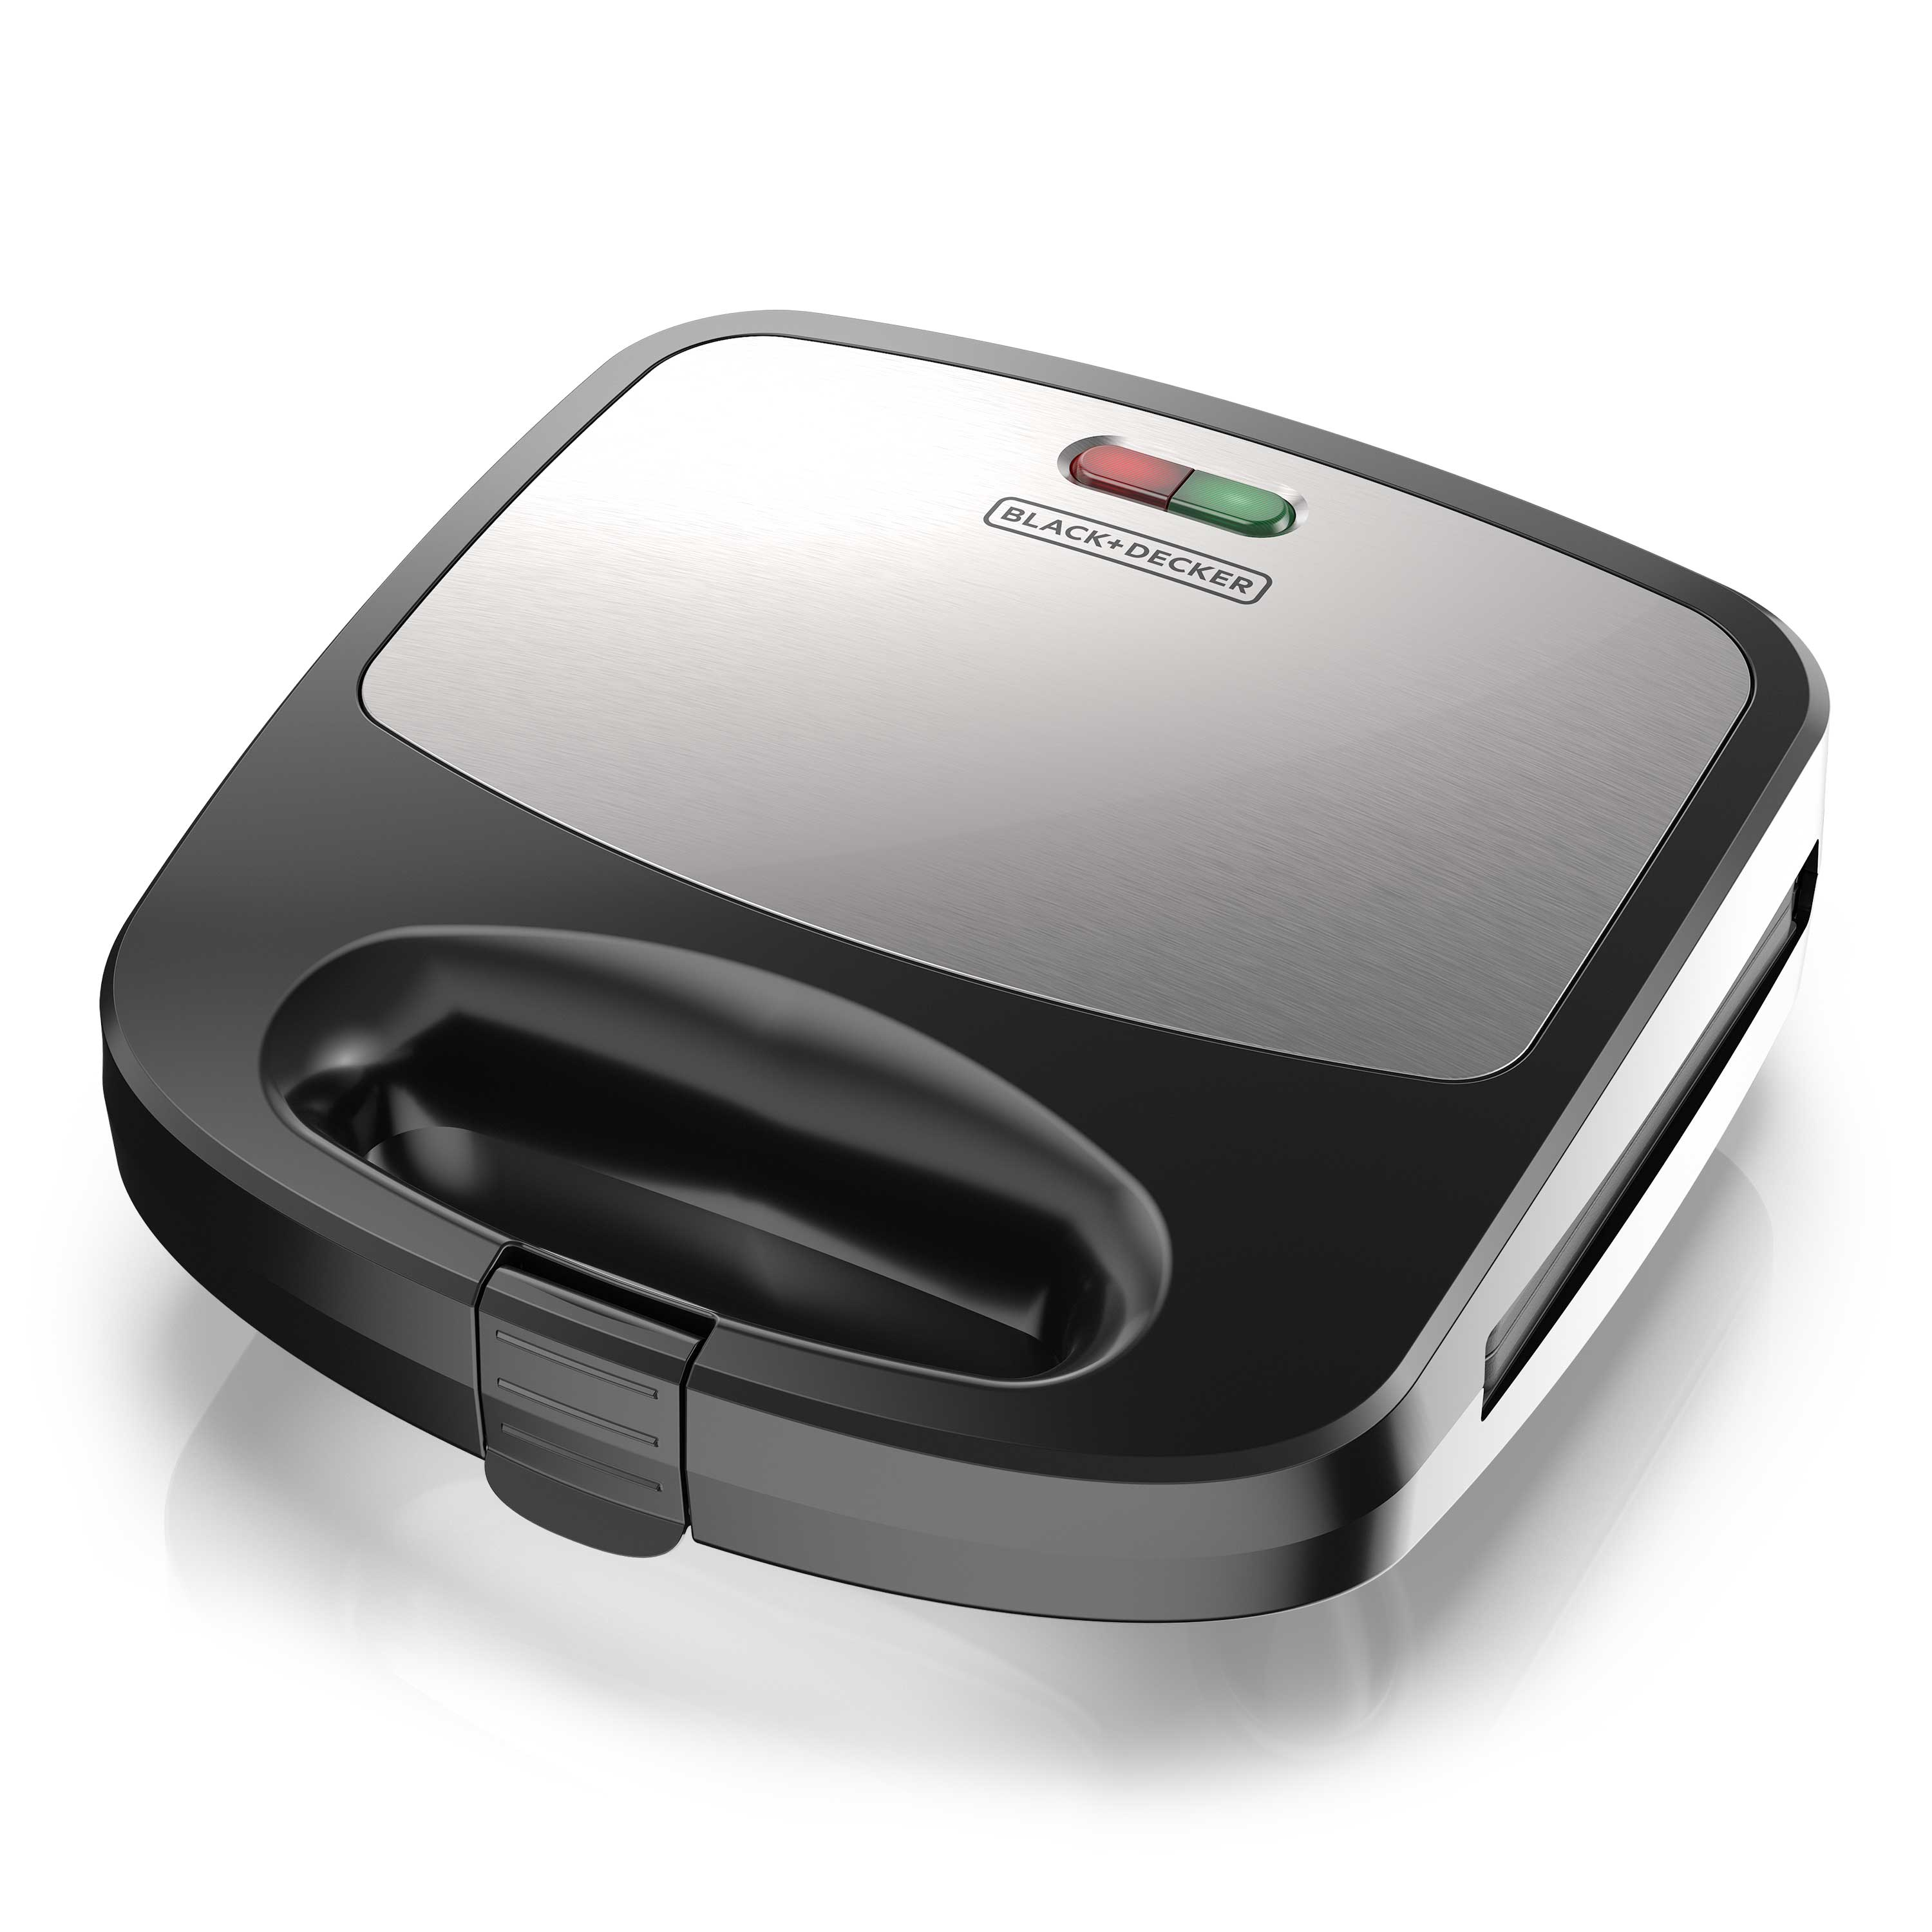 BLACK+DECKER 3-in-1 Morning Meal Station™ Waffle Maker, Grill, or Sandwich Maker, Black/Silver, WM2000SD